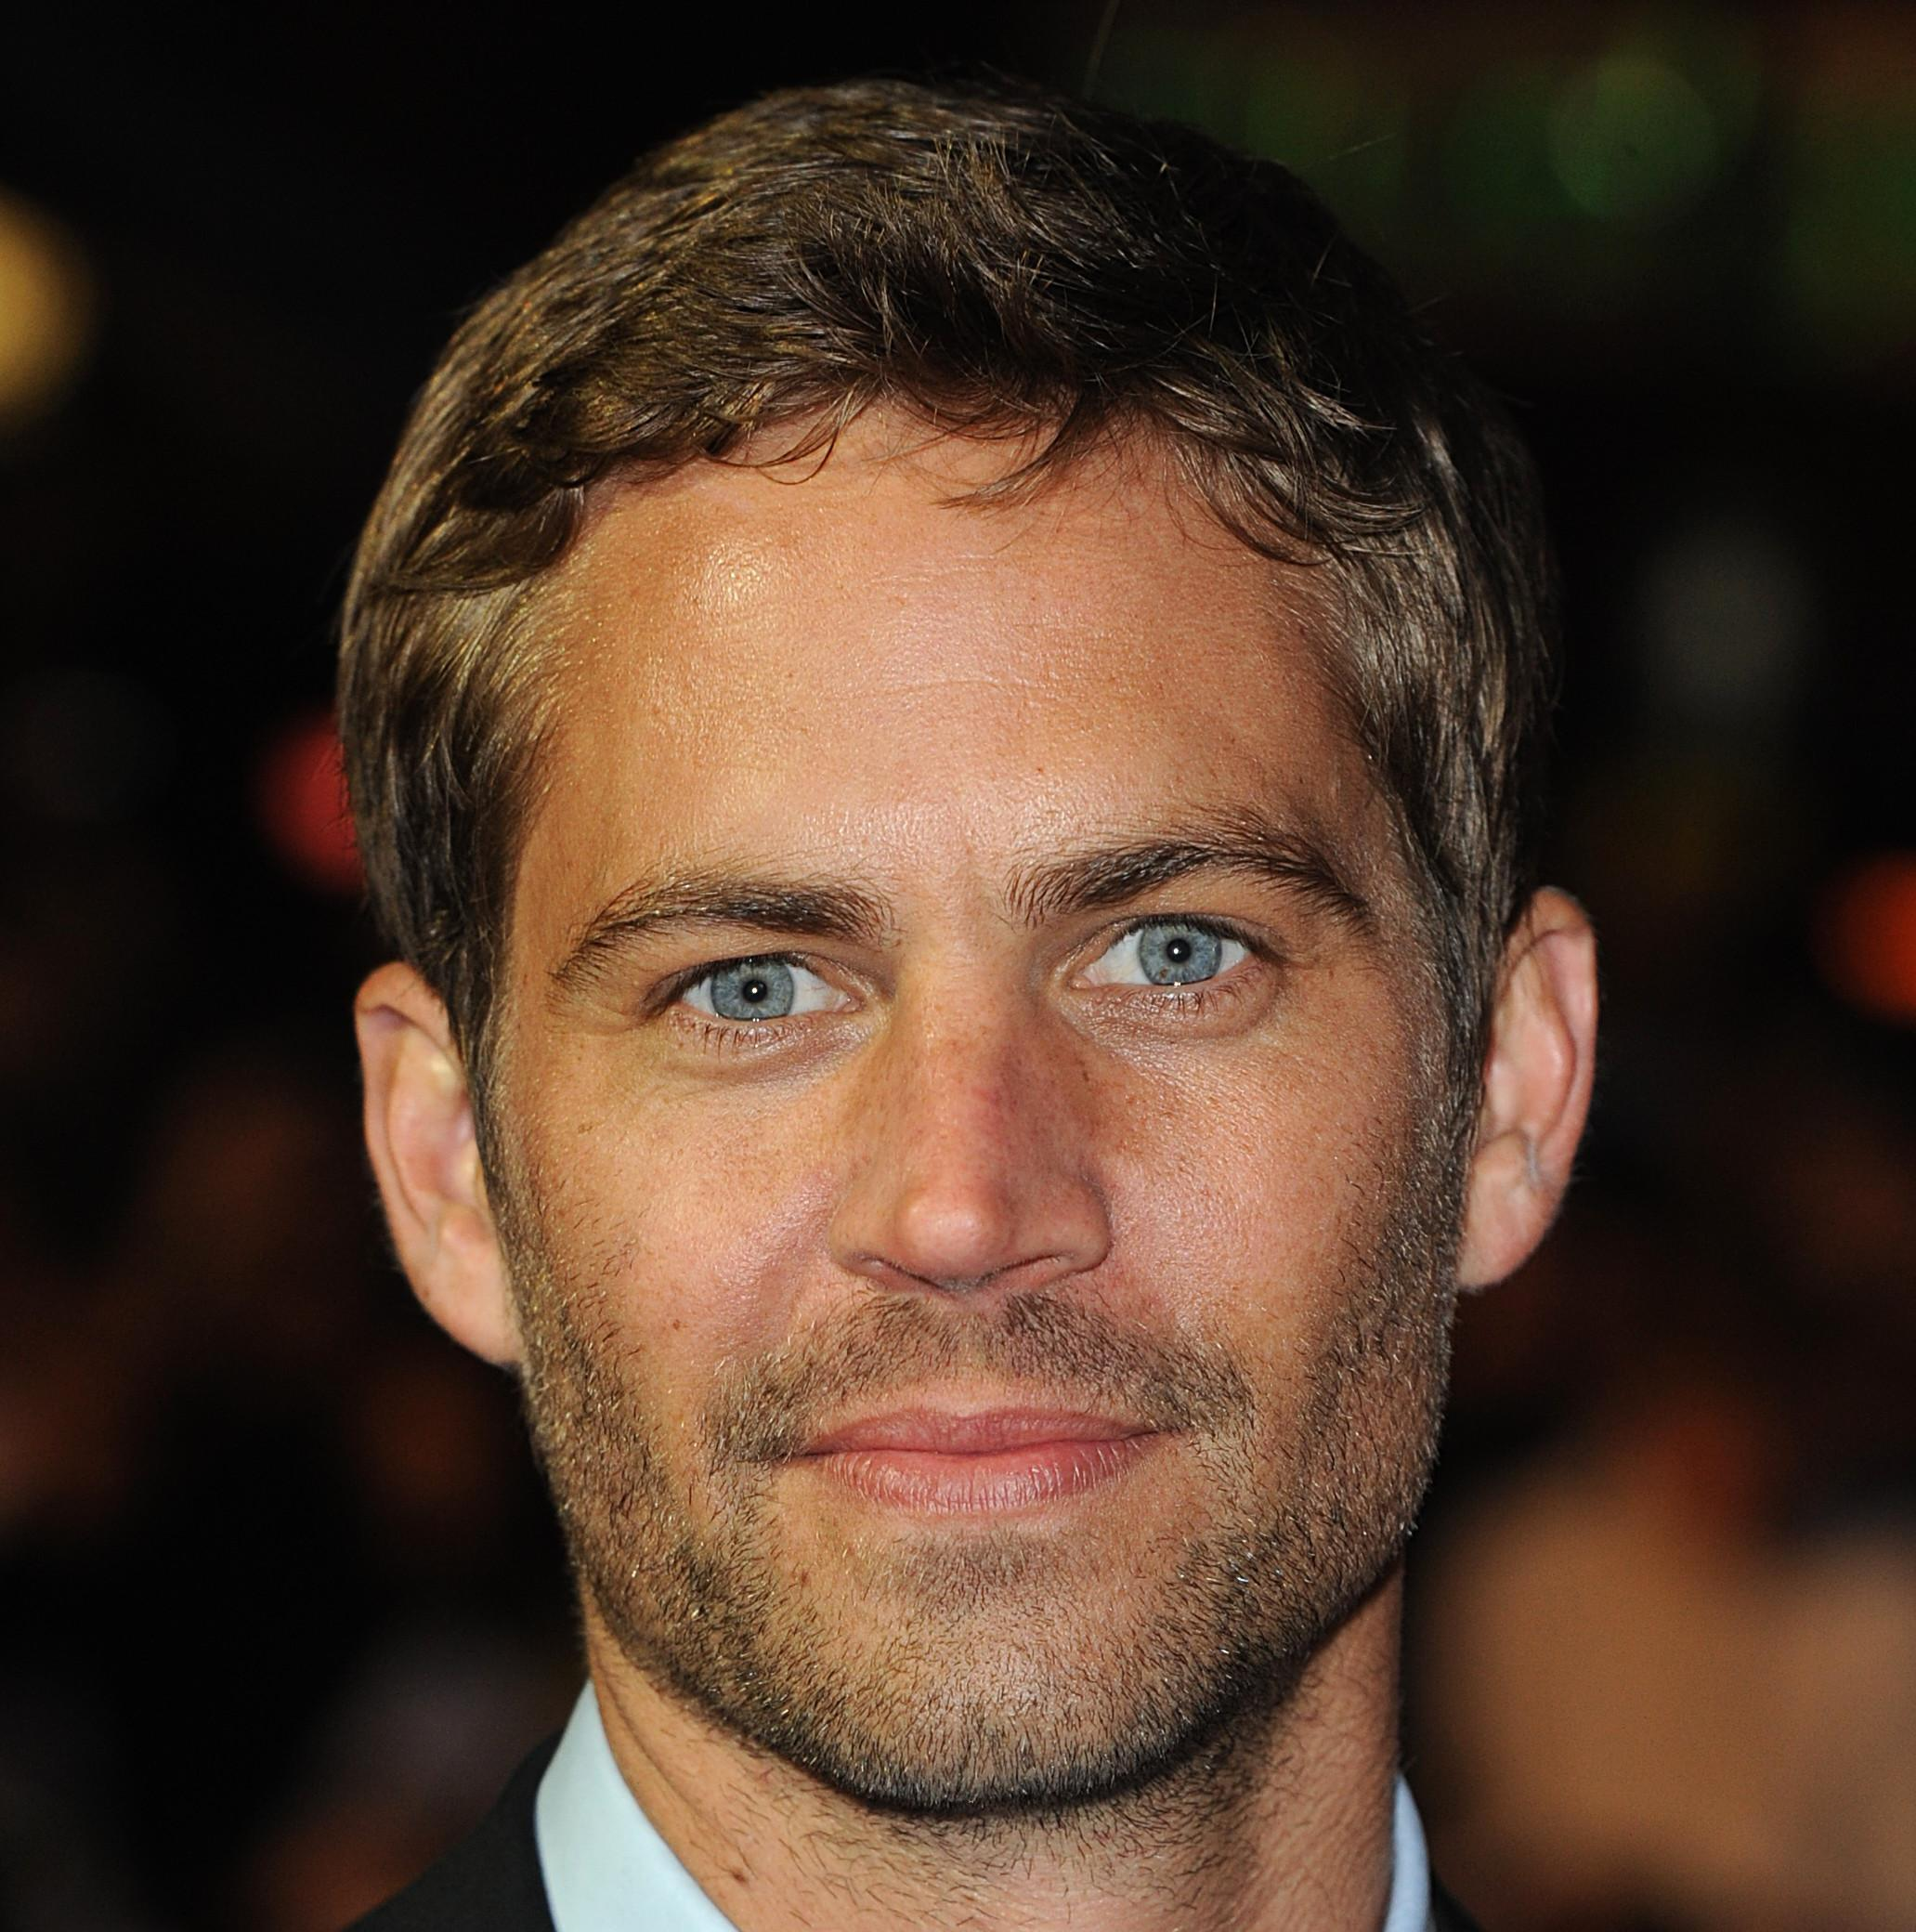 mort de paul walker les fans se rassemblent los angeles elle. Black Bedroom Furniture Sets. Home Design Ideas